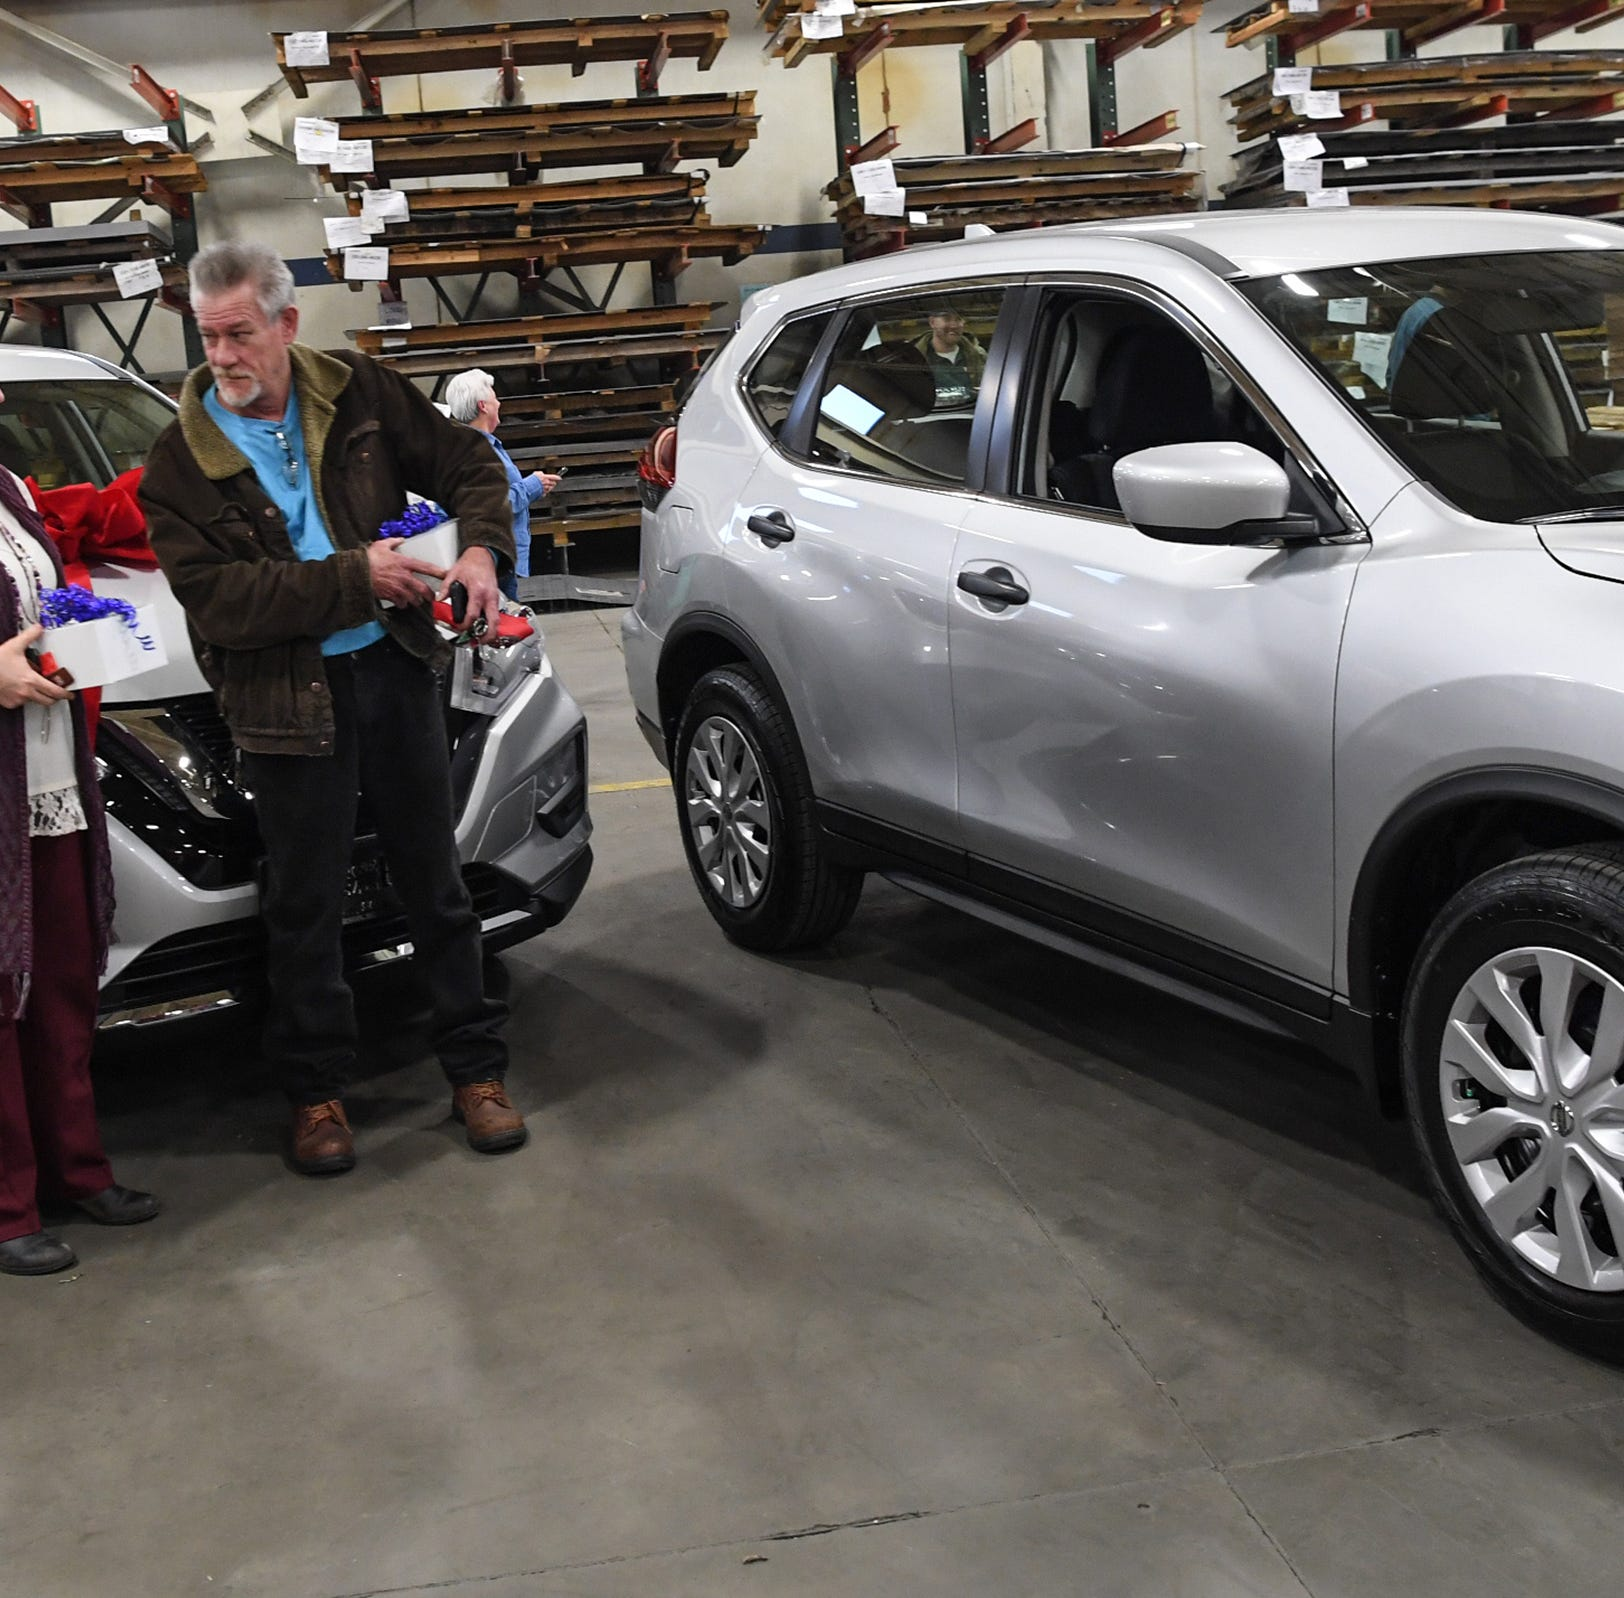 Anderson's Sargent Metal surprised 2 employees with new cars for their 40-year anniversaries